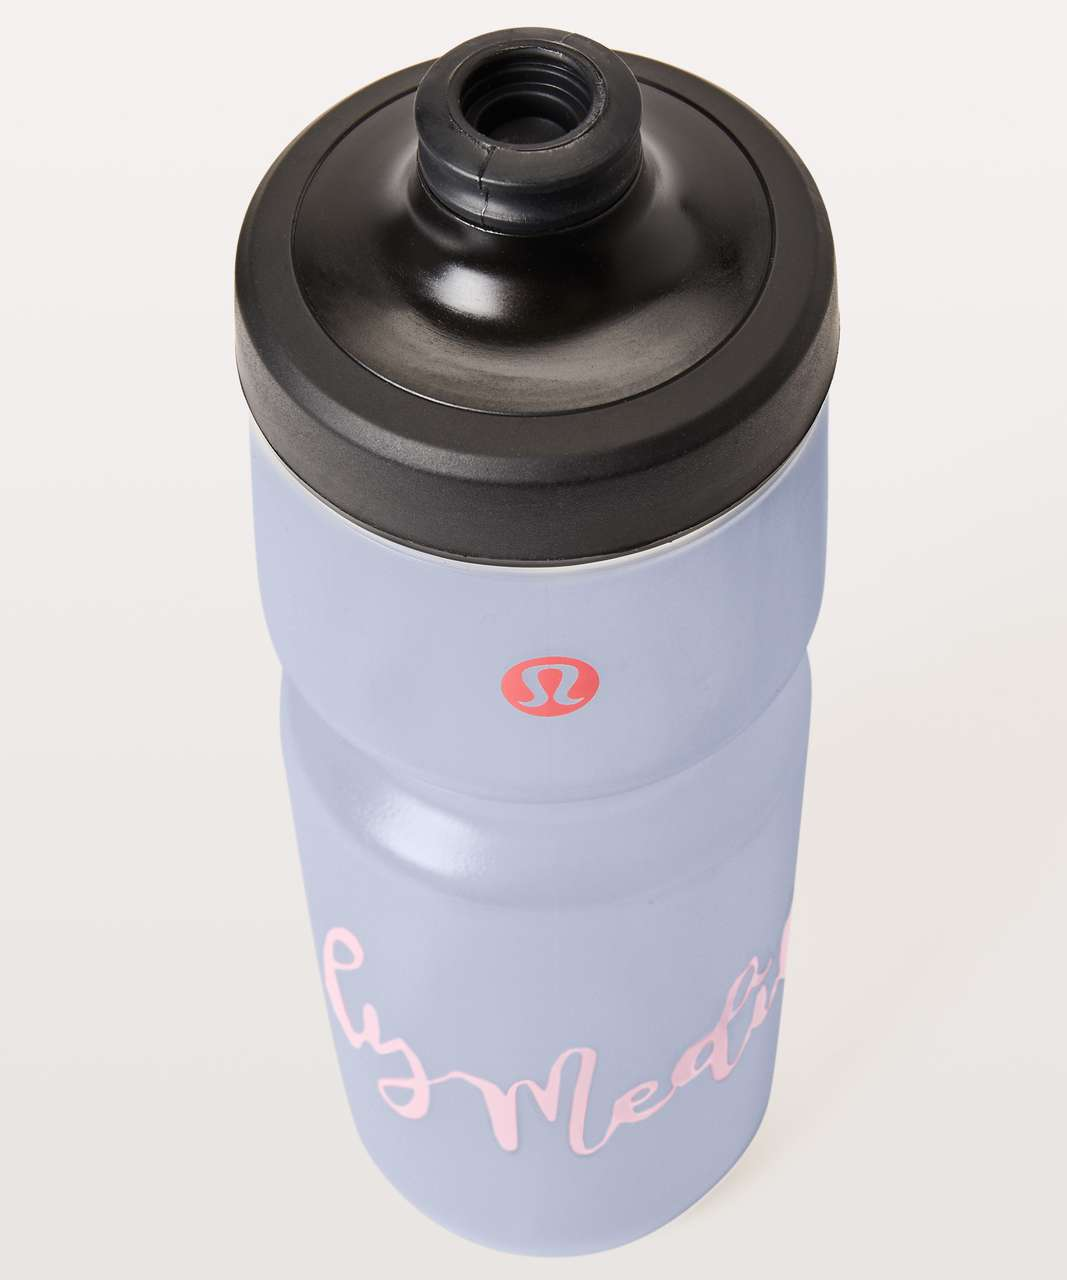 Lululemon Purist Cycling Water Bottle - Highly Meditated